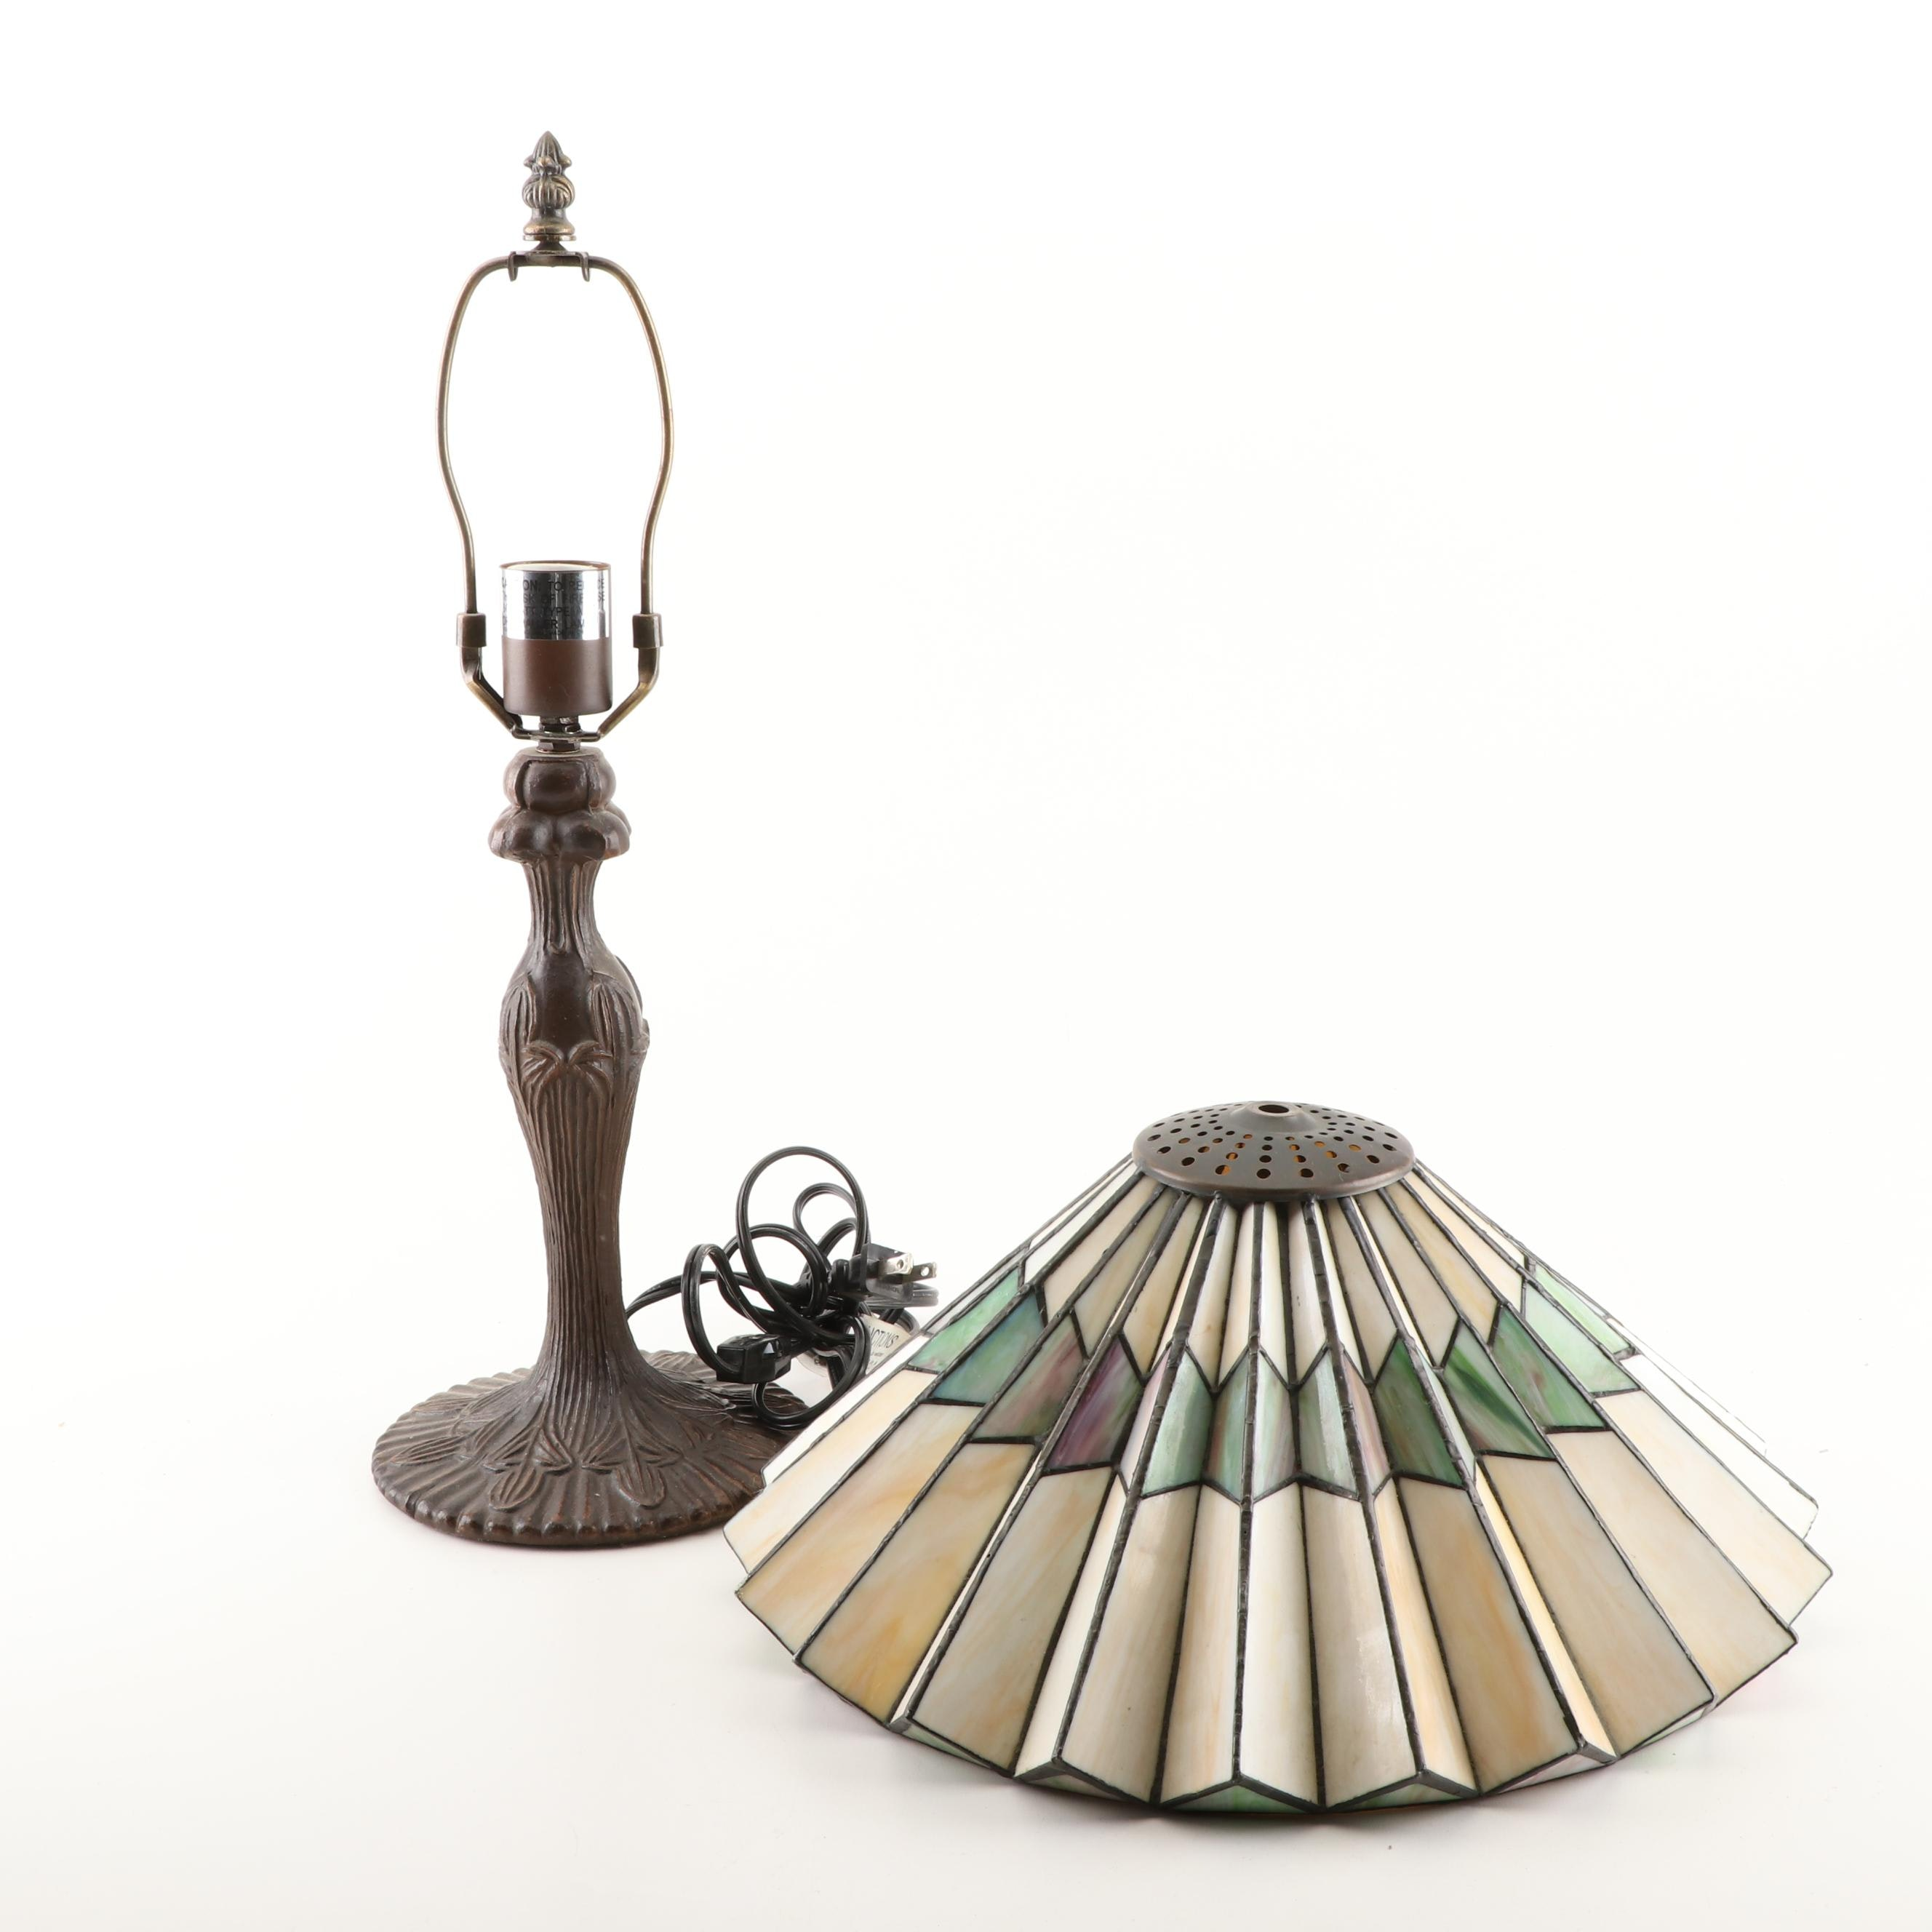 Art Nouveau Style Lamp with Slag Glass Shade